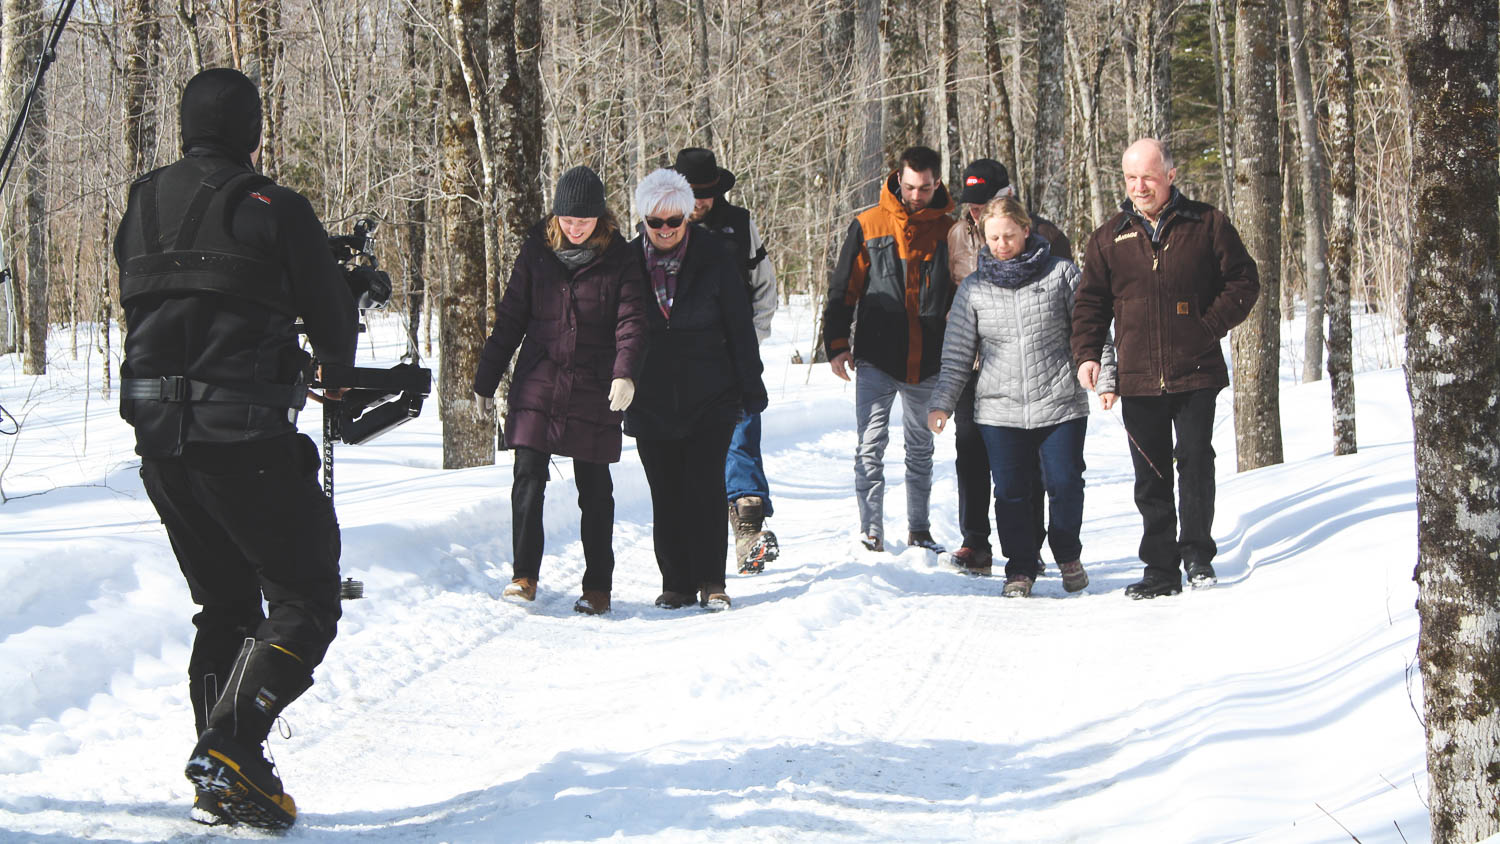 Here are the participants of the final episode of the show Diner à a Ferme au Canada 2 , we can see the DOP with is seadycam performing a backward travelling in the forest in winter.